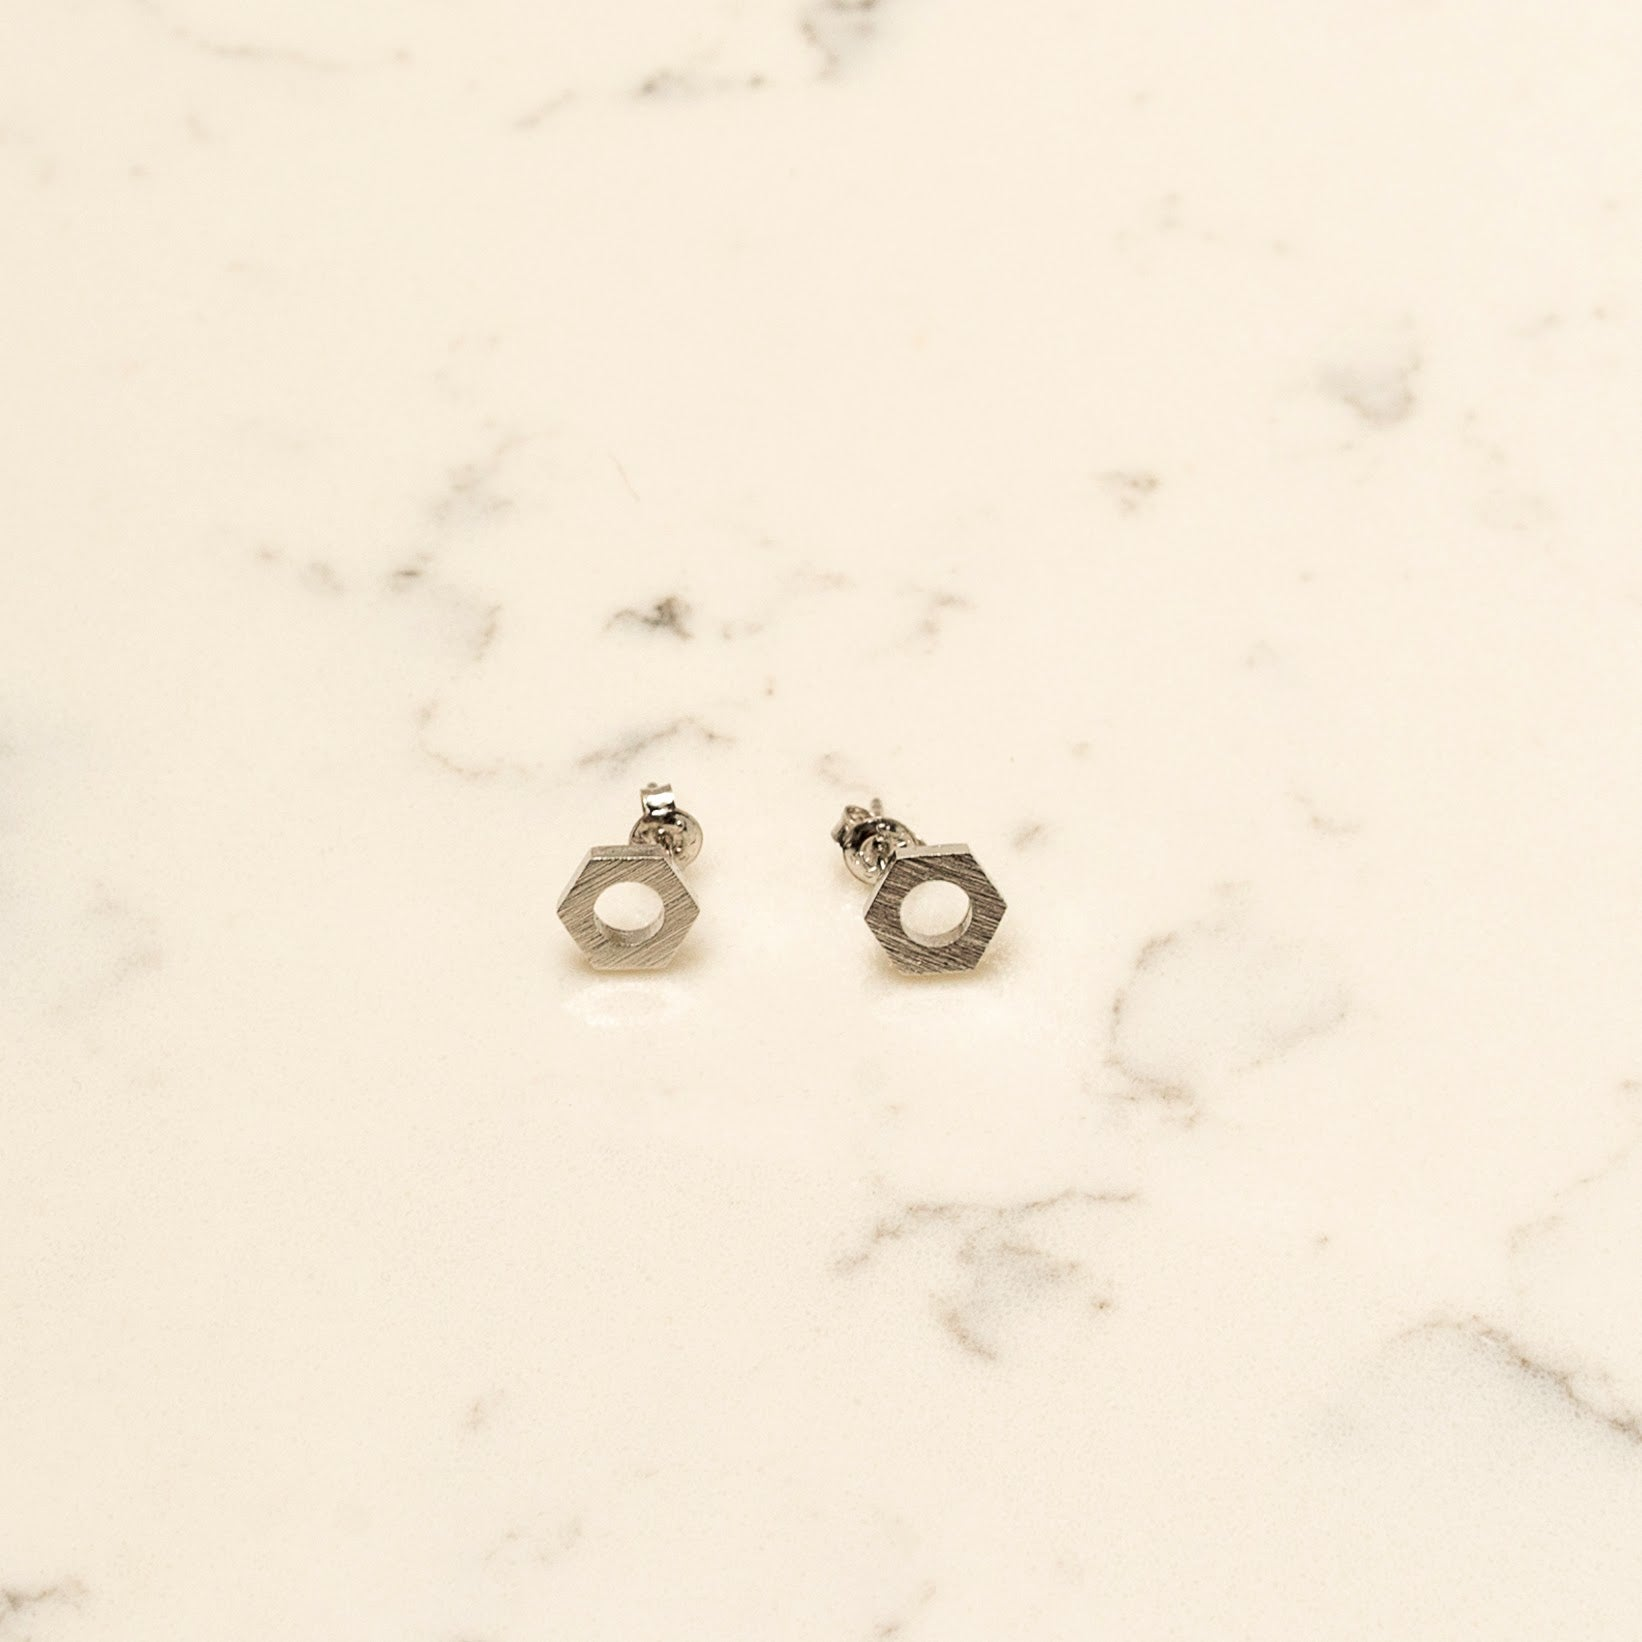 Lugnut Bolt Earrings